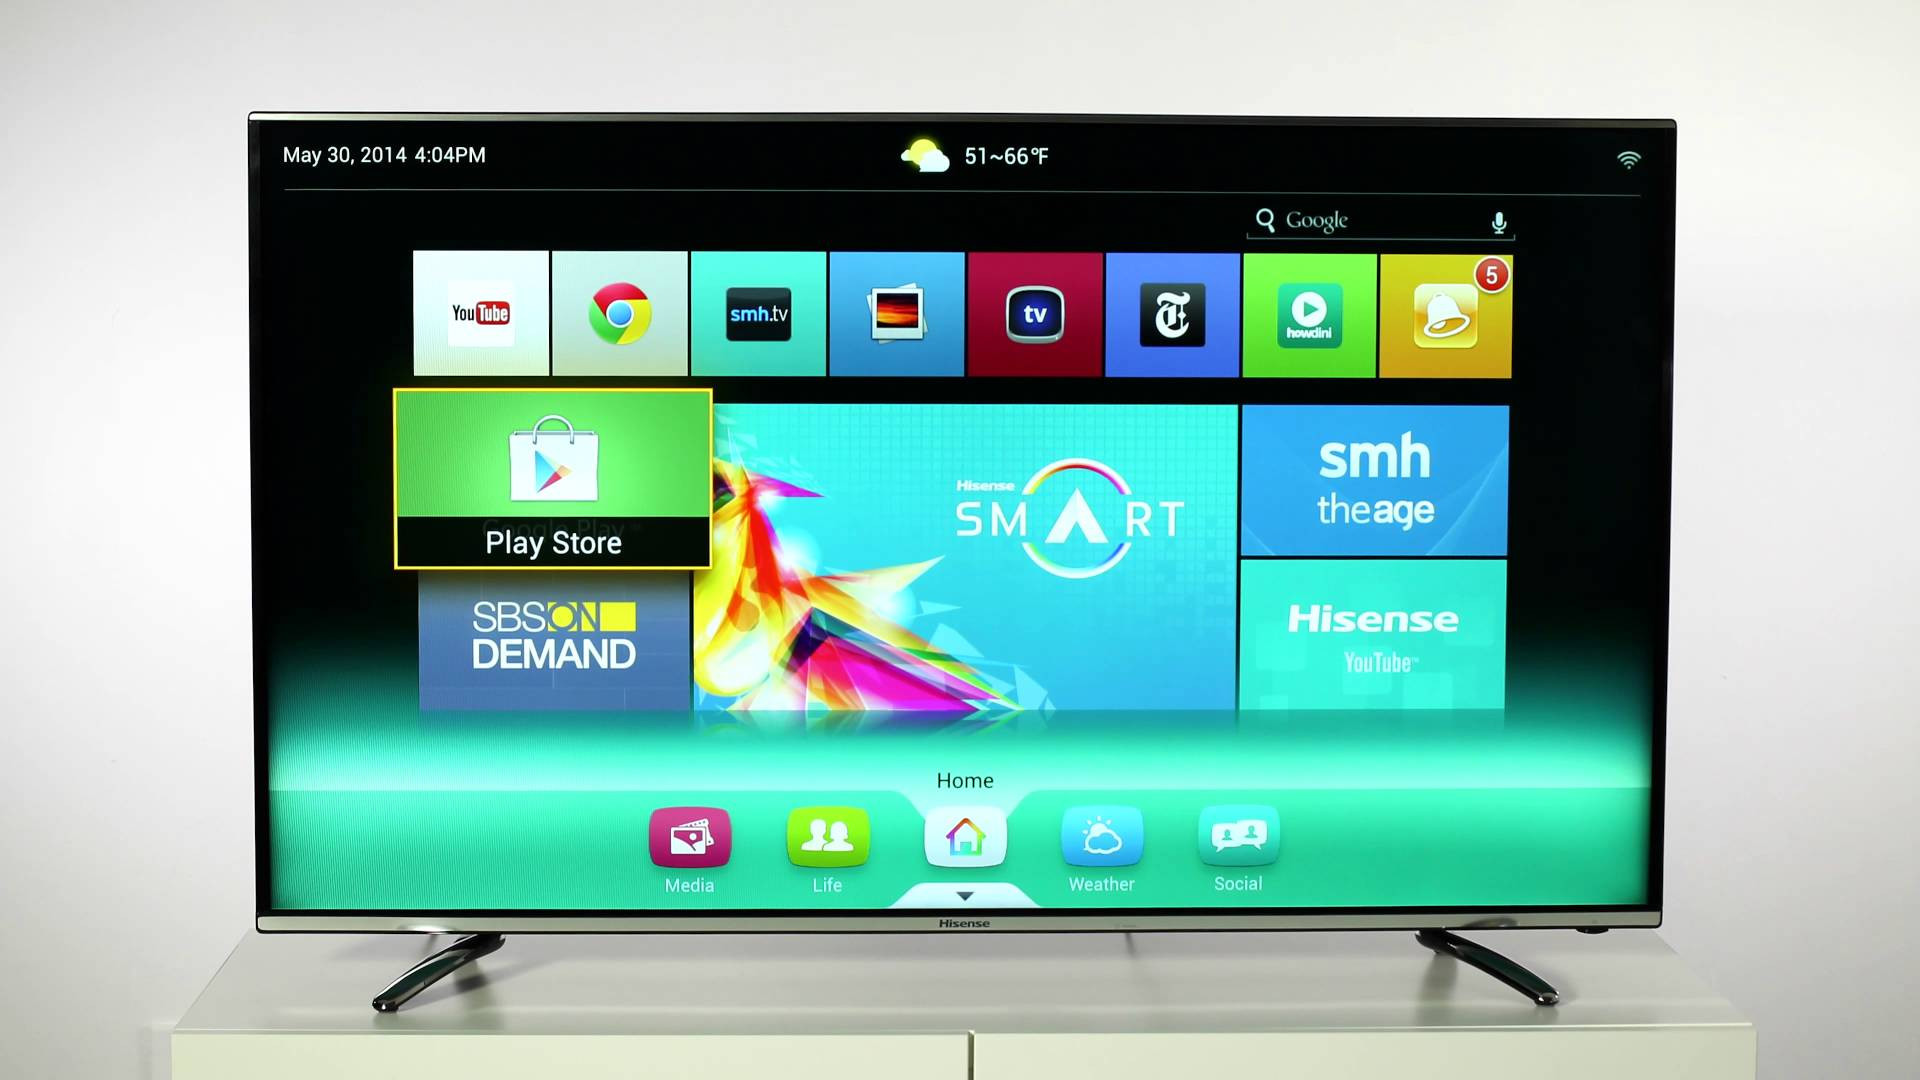 Tv Con Smart Tv Arriba Descargar Play Store Para Smart Tv Marca Hisense Of 40  Gran Tv Con Smart Tv